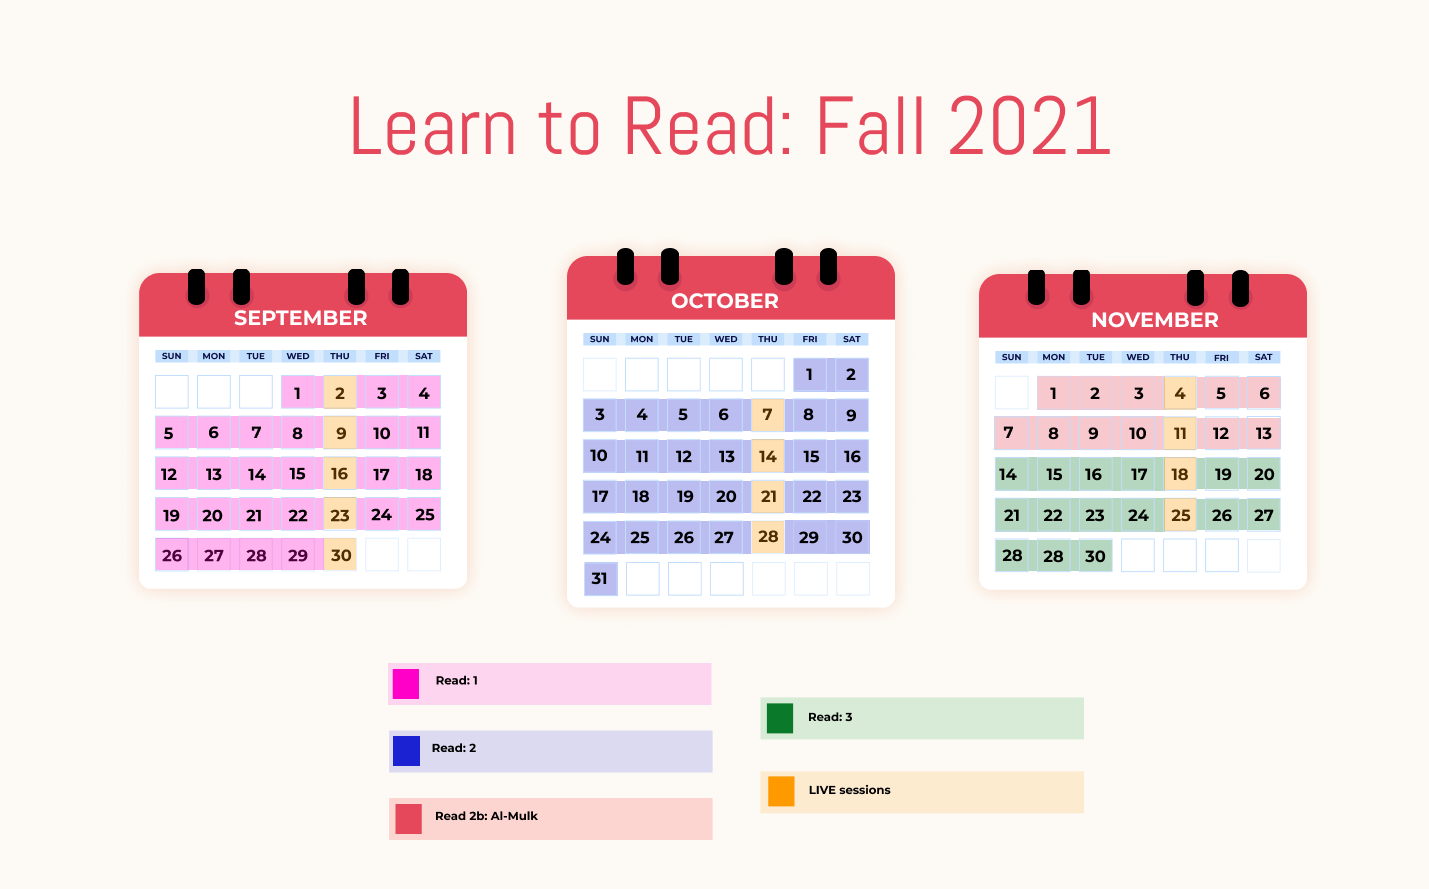 Calendar that shows the three-month timeline of the UQA Summer program